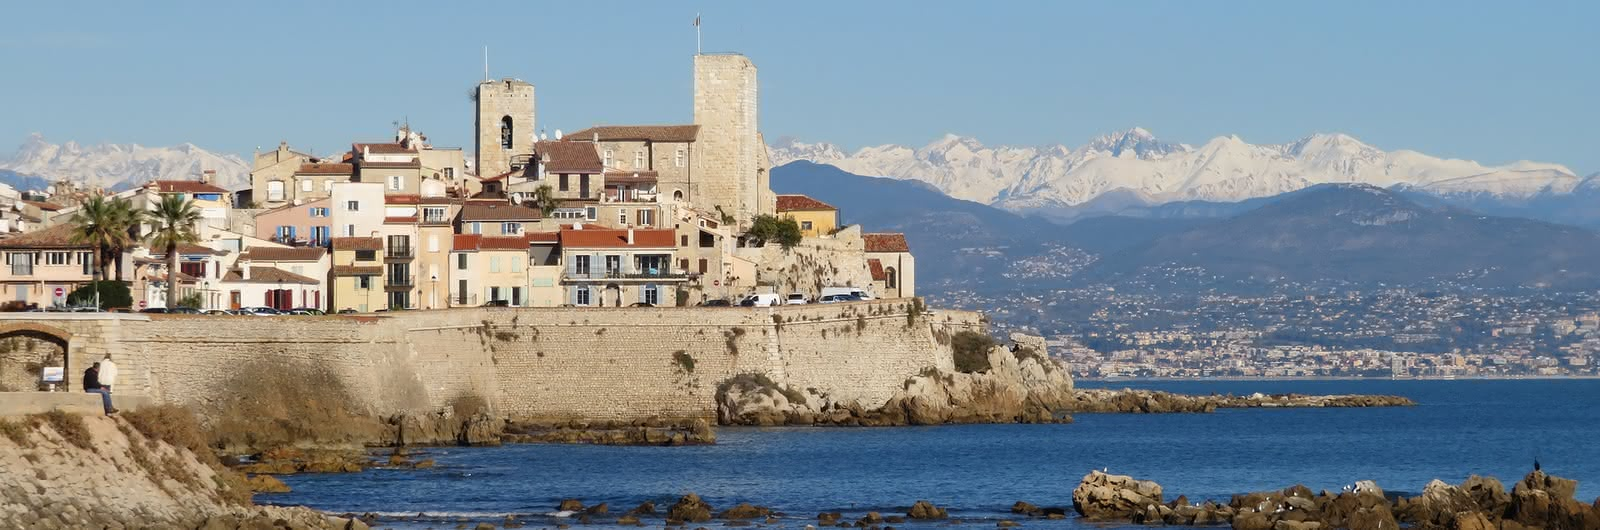 antibes city header